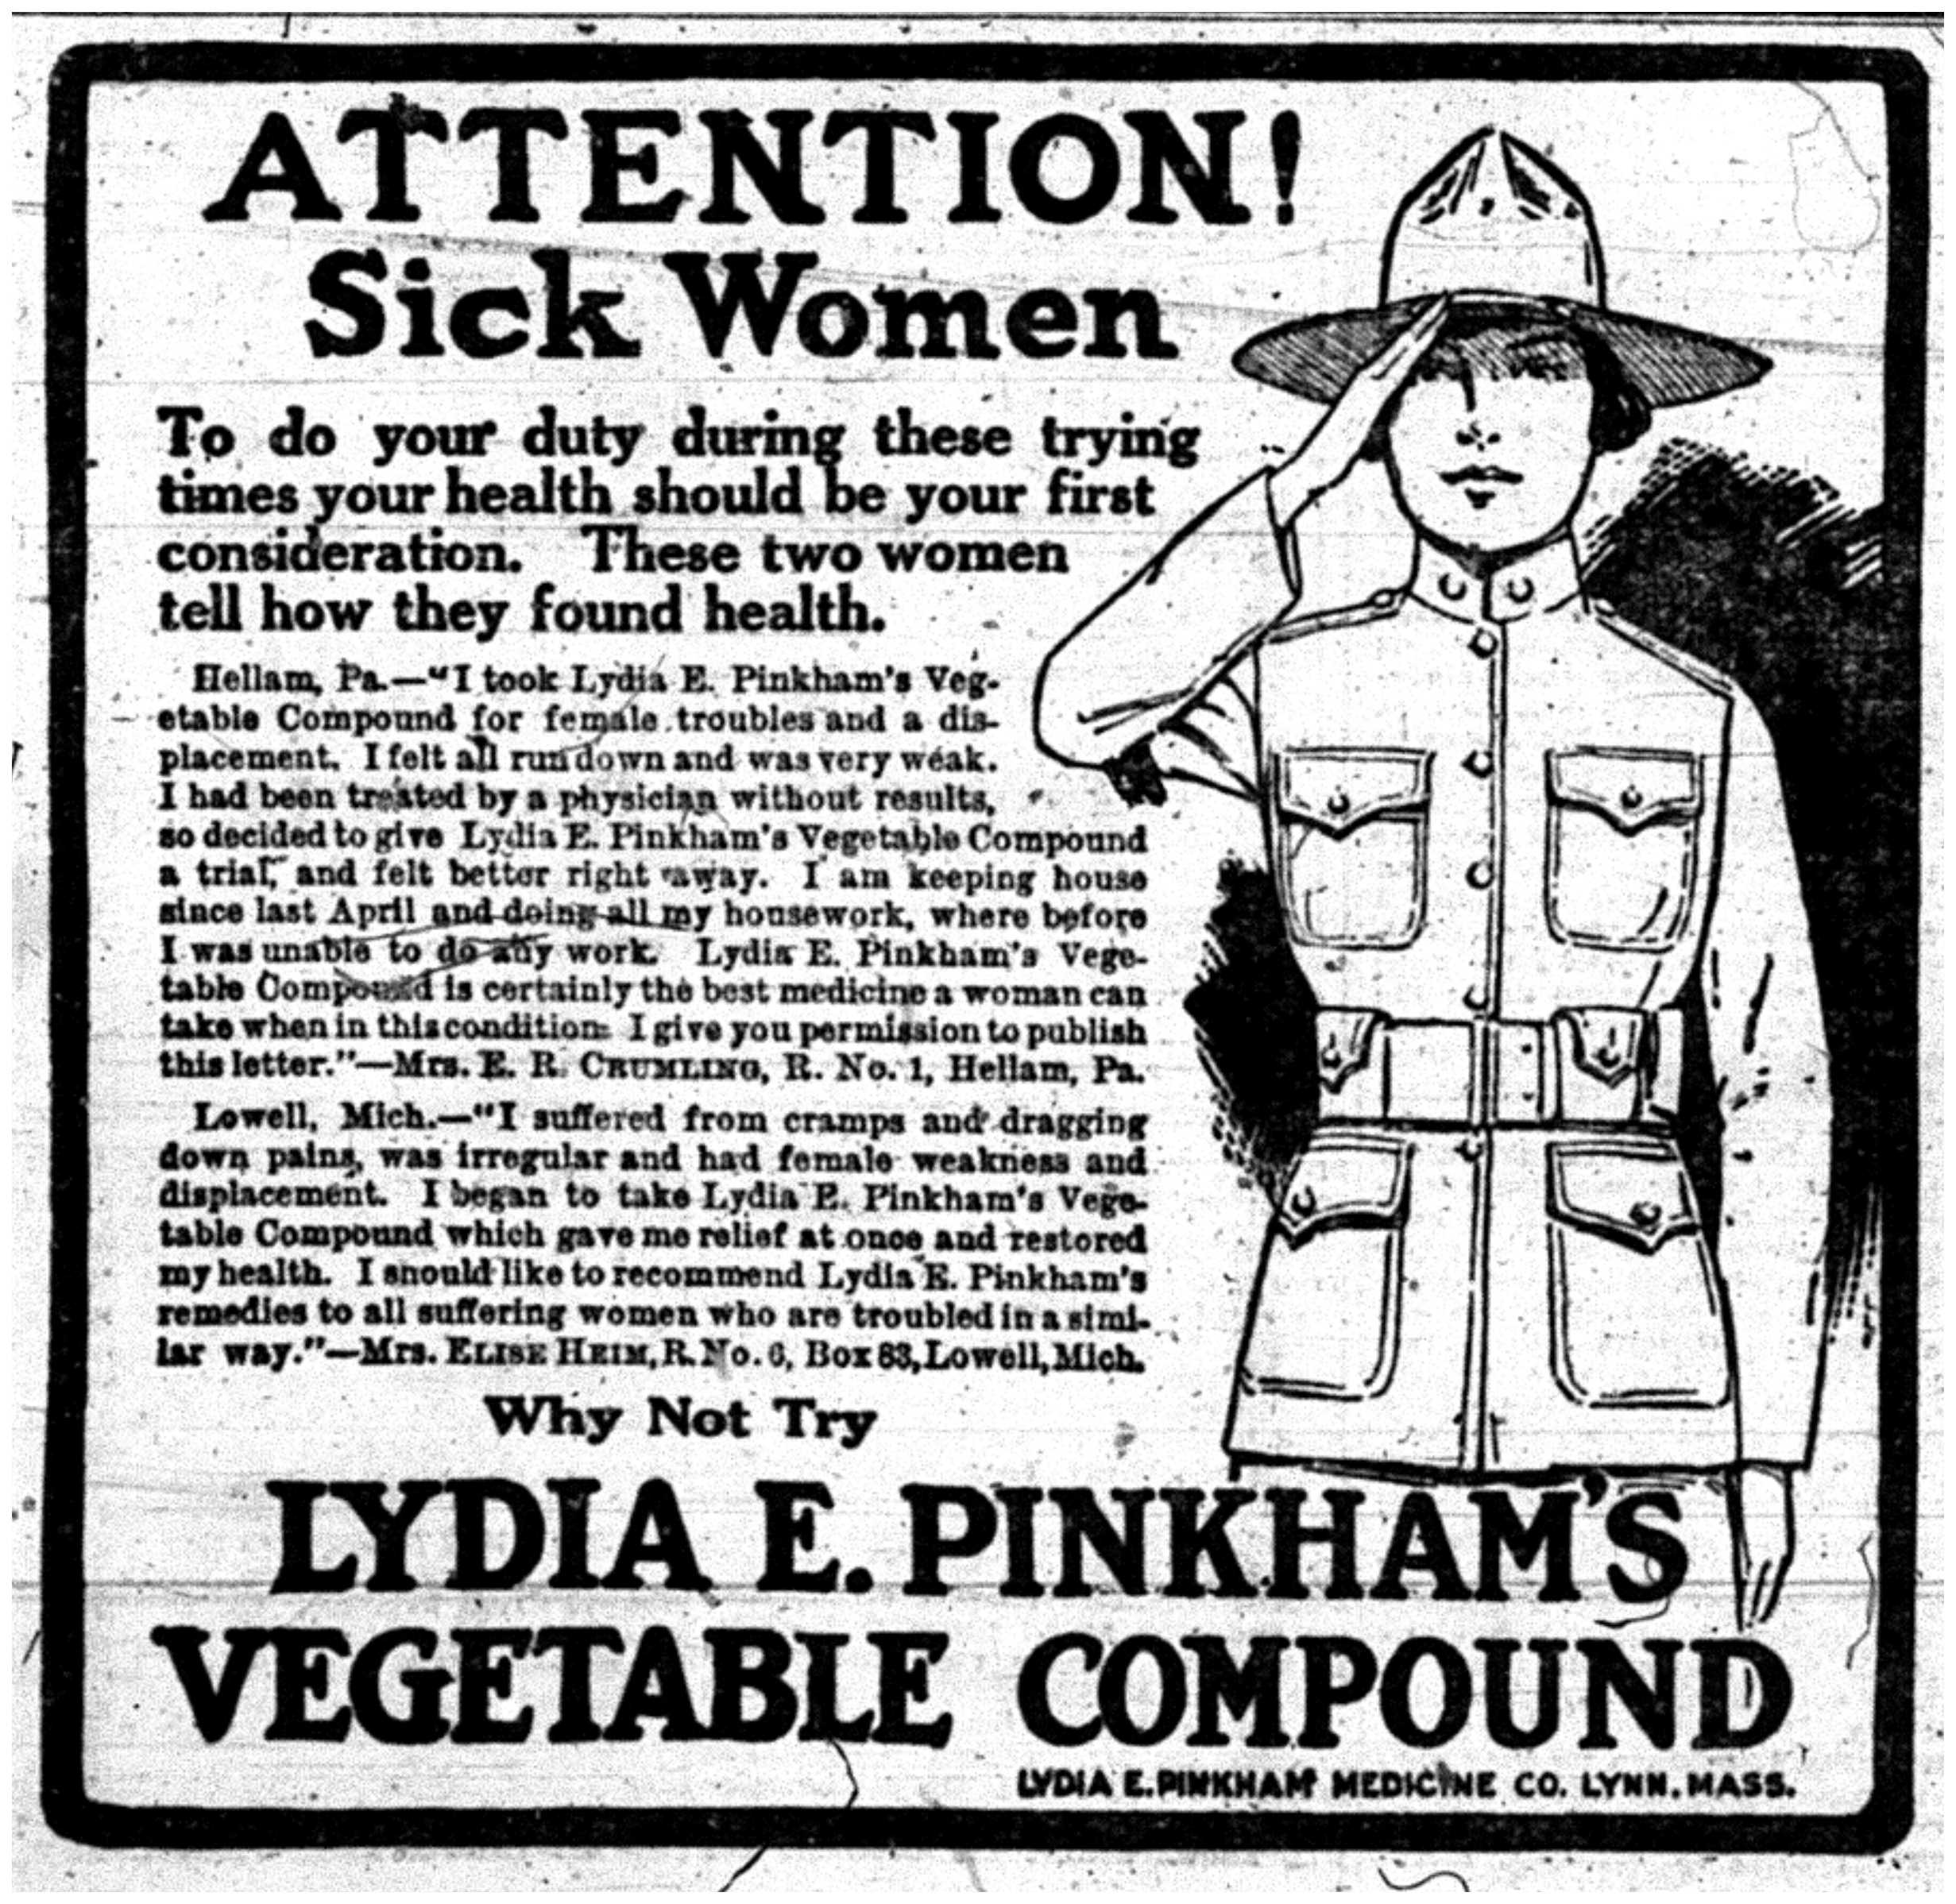 """ATTENTION! Sick Women"""